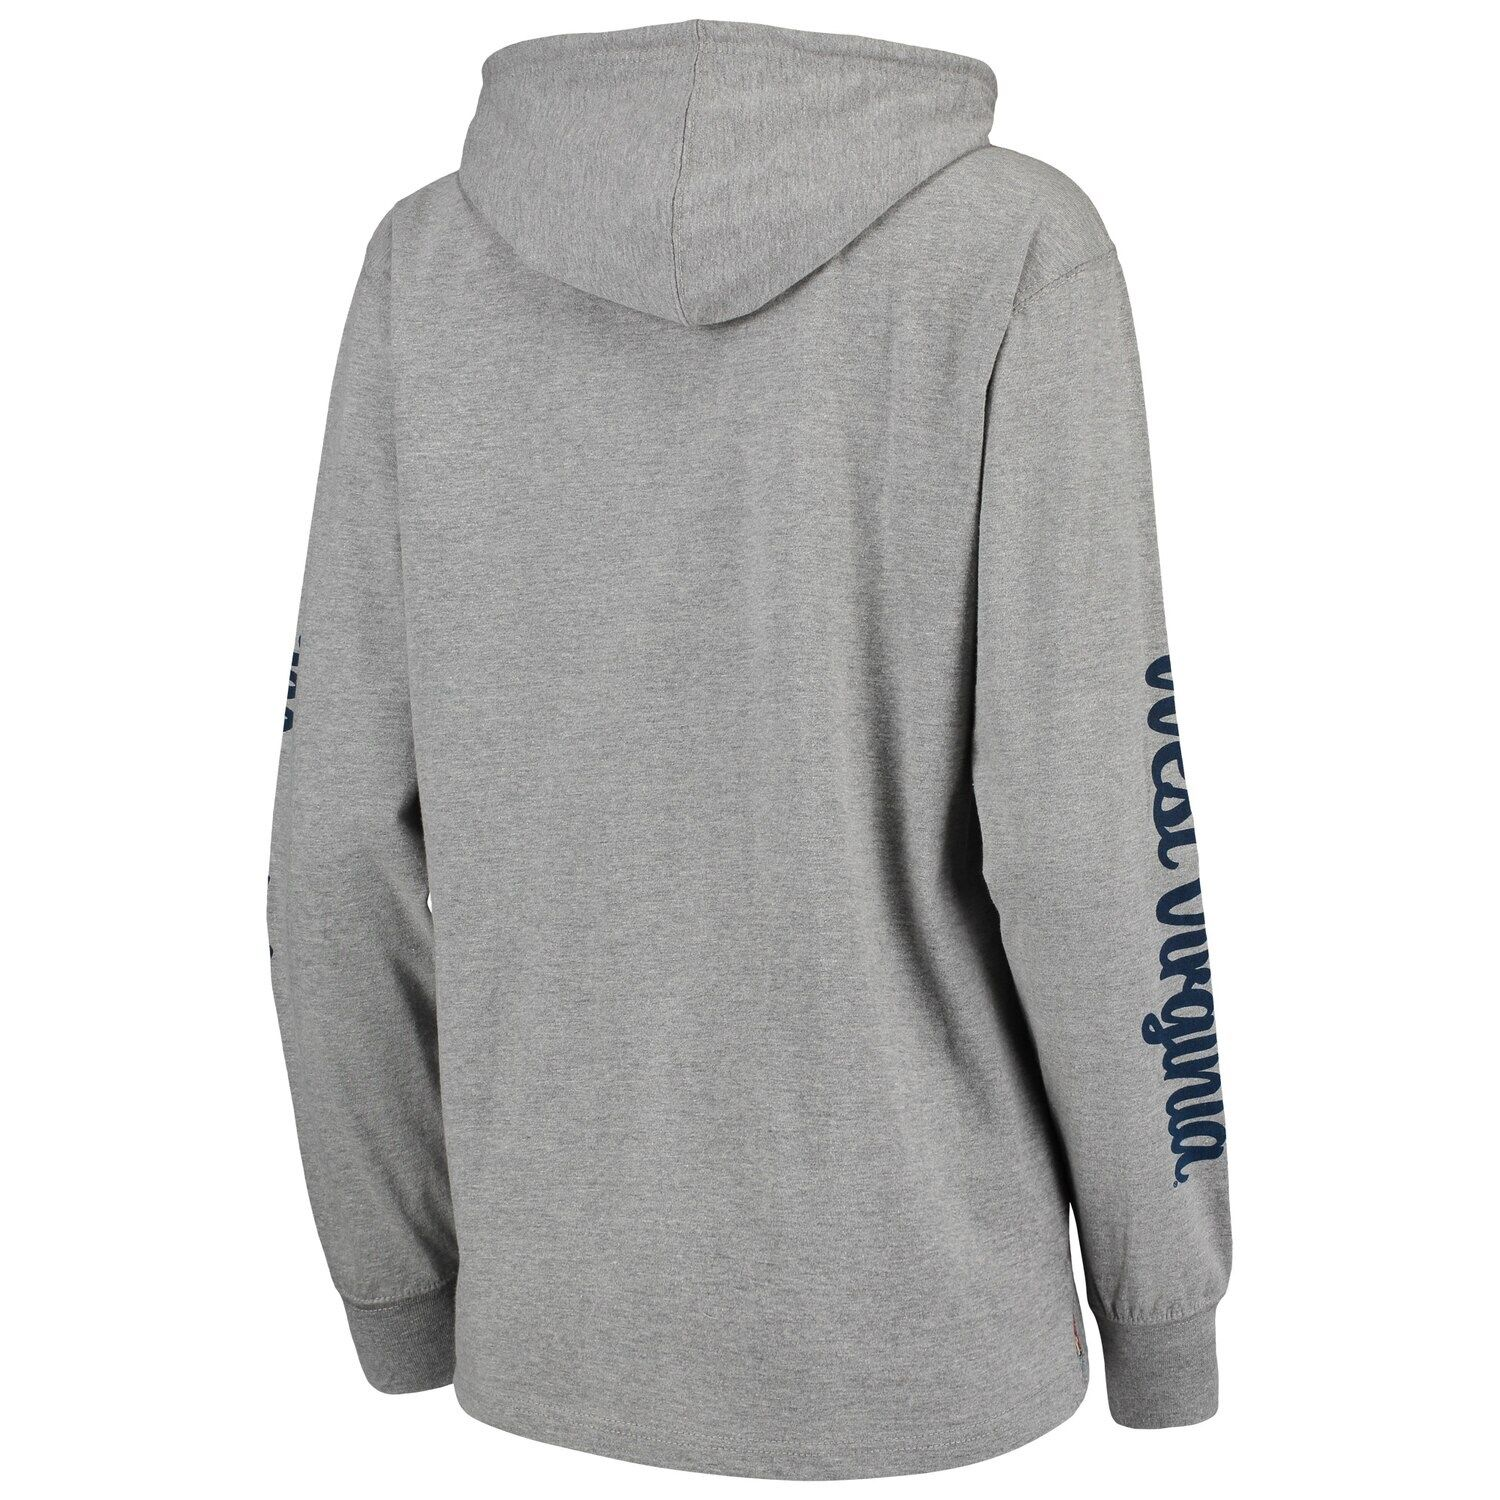 Women's Pressbox Heathered Gray West Virginia Mountaineers Lightweight Pullover Hoodie T-Shirt #westvirginia